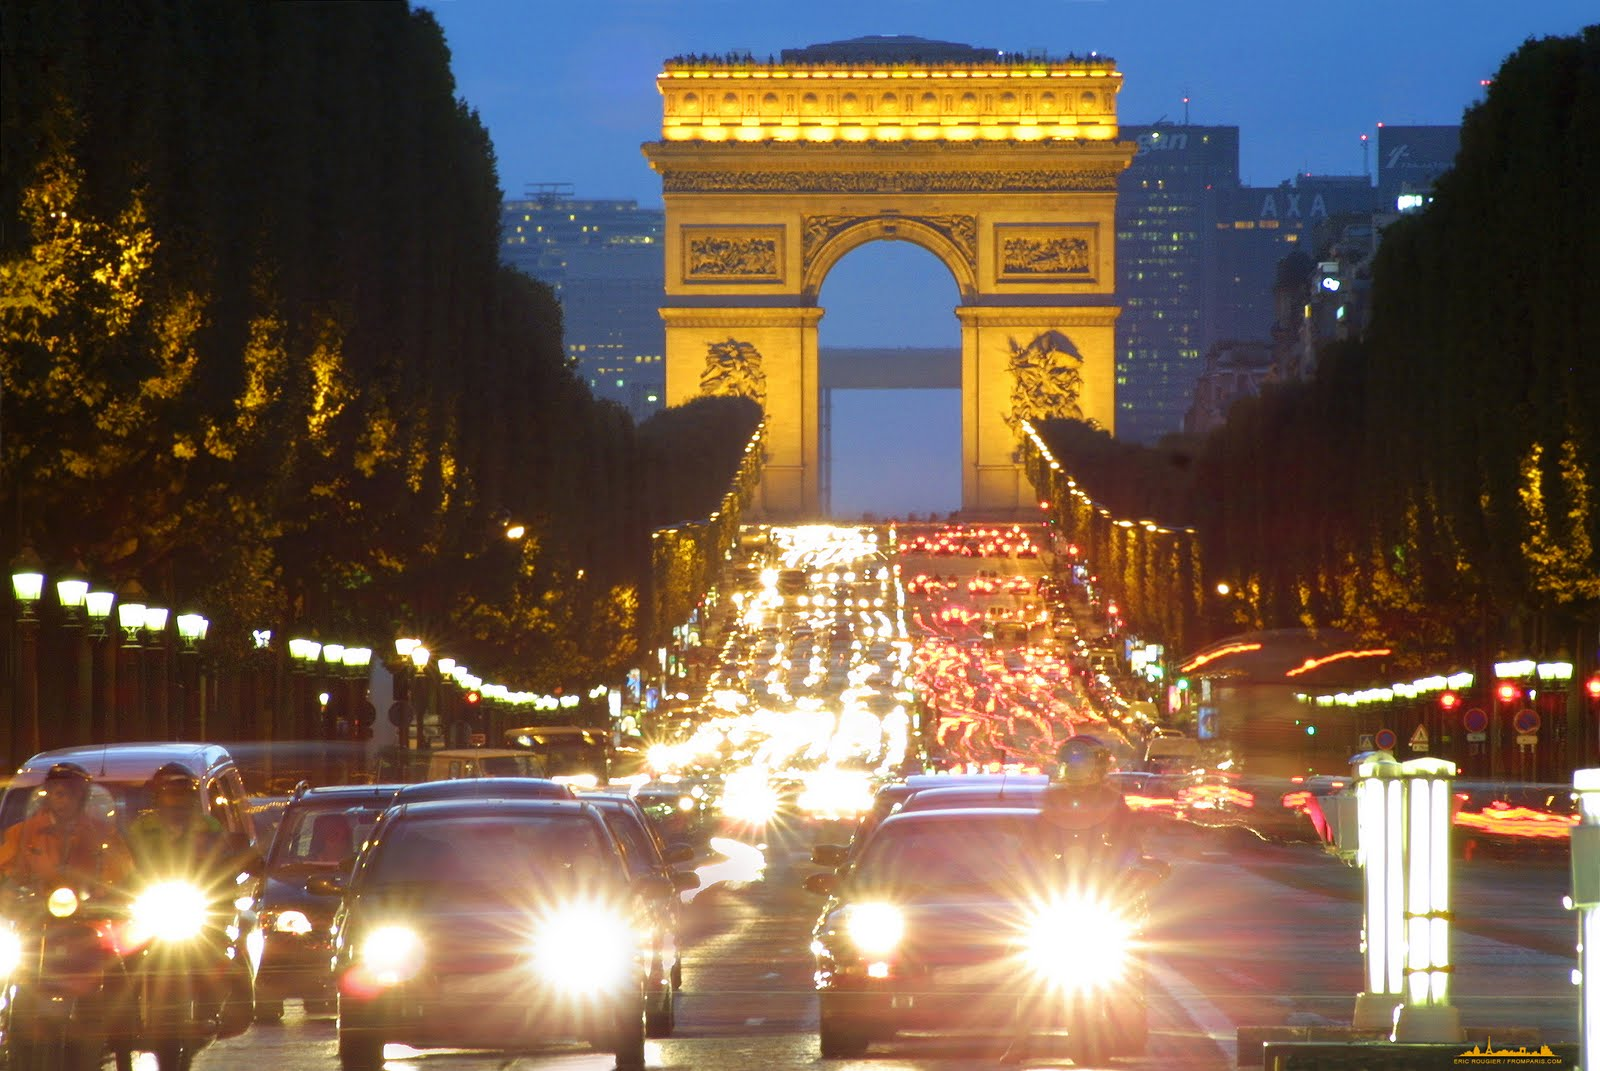 http://1.bp.blogspot.com/_IwjT5TSKHjg/S_cxl5gQ8cI/AAAAAAAAB-M/AsiJ6V13O20/s1600/wallpaper_fromparis_arc_de_triomphe_and_champs_elysees_full.jpg